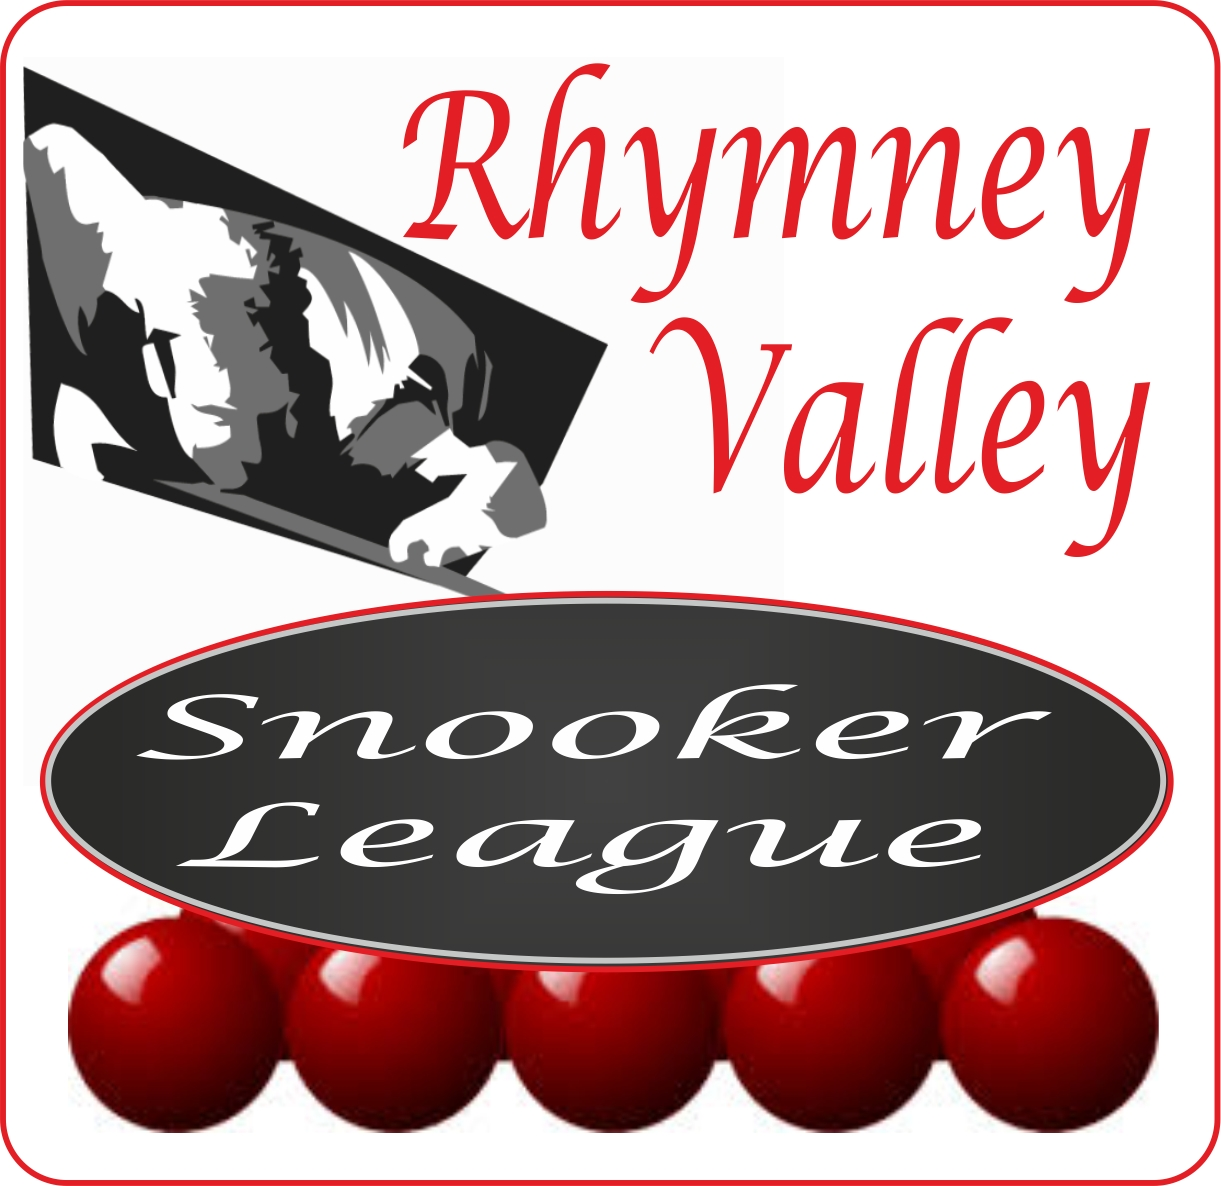 Rhymney Valley Snooker League